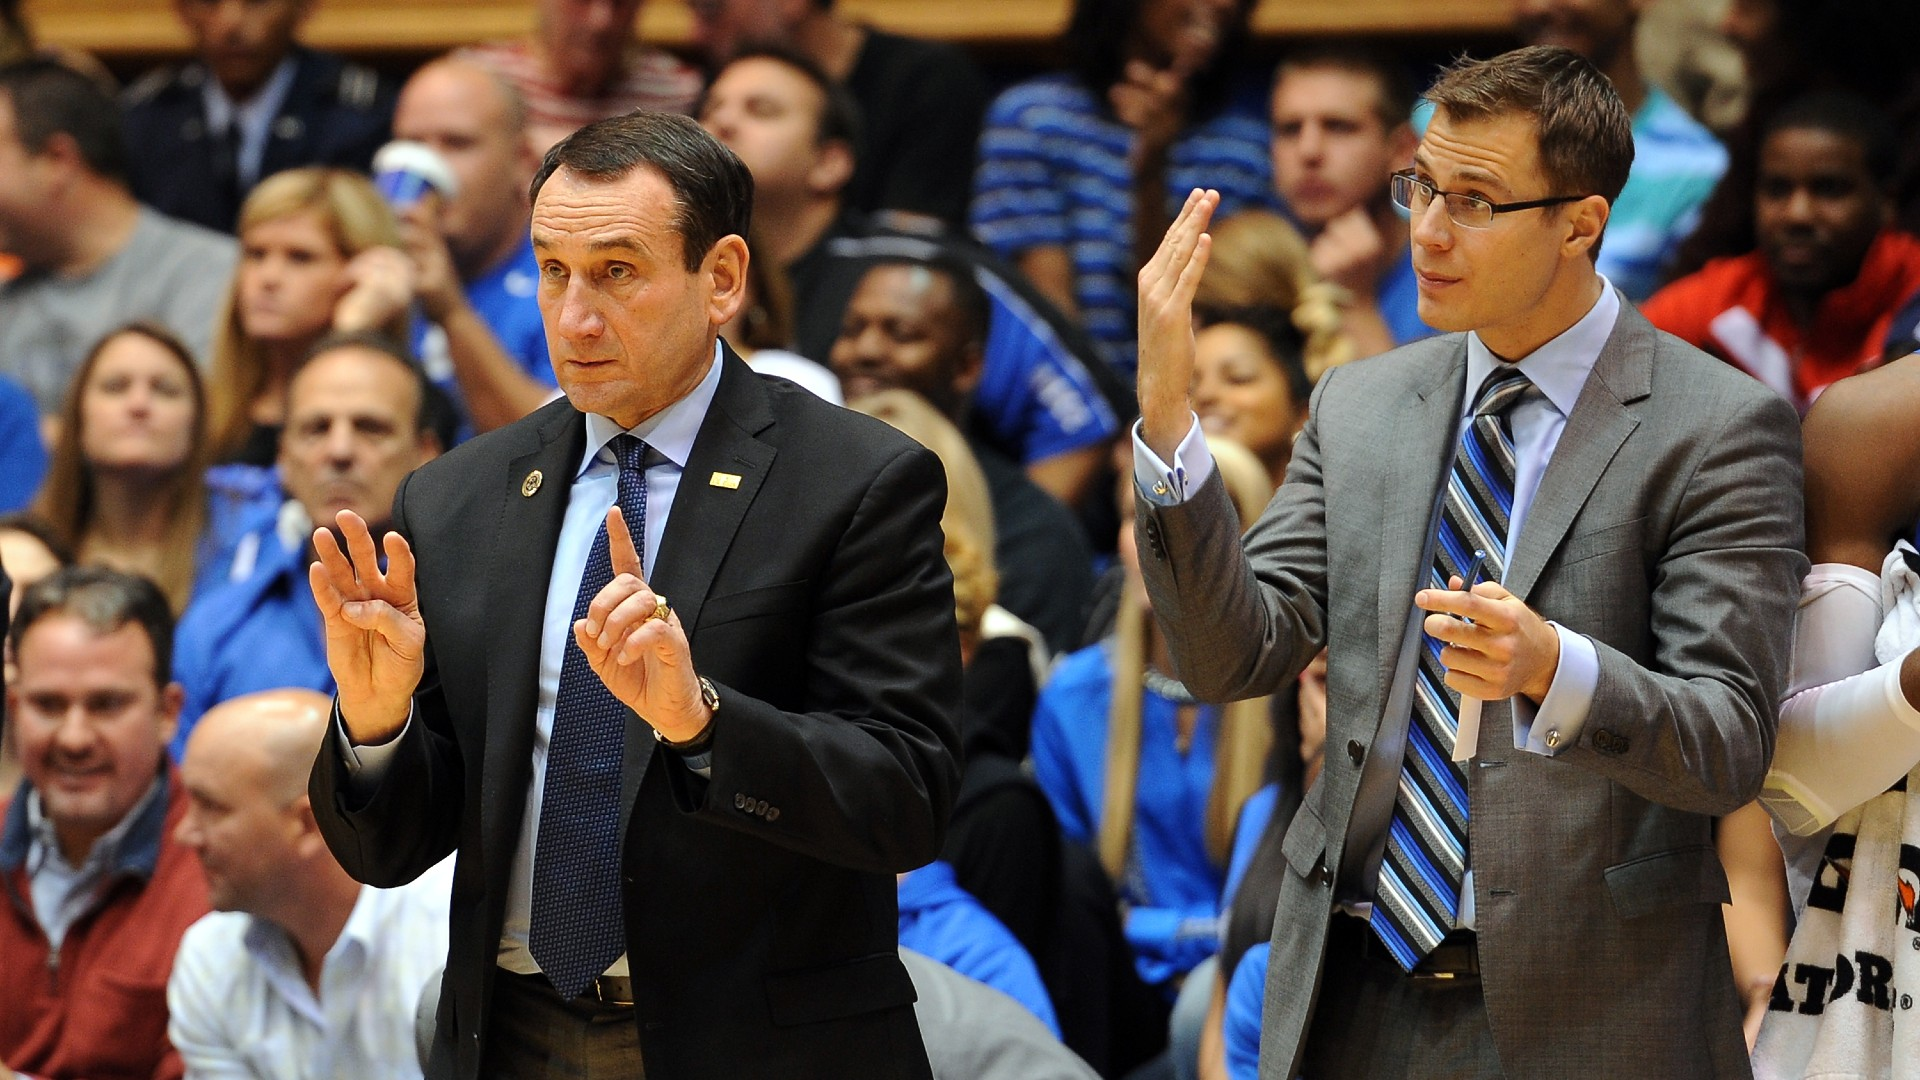 Jon Scheyer's impending role as head coach will help us find out if Duke or Coach K is the real blueblood.